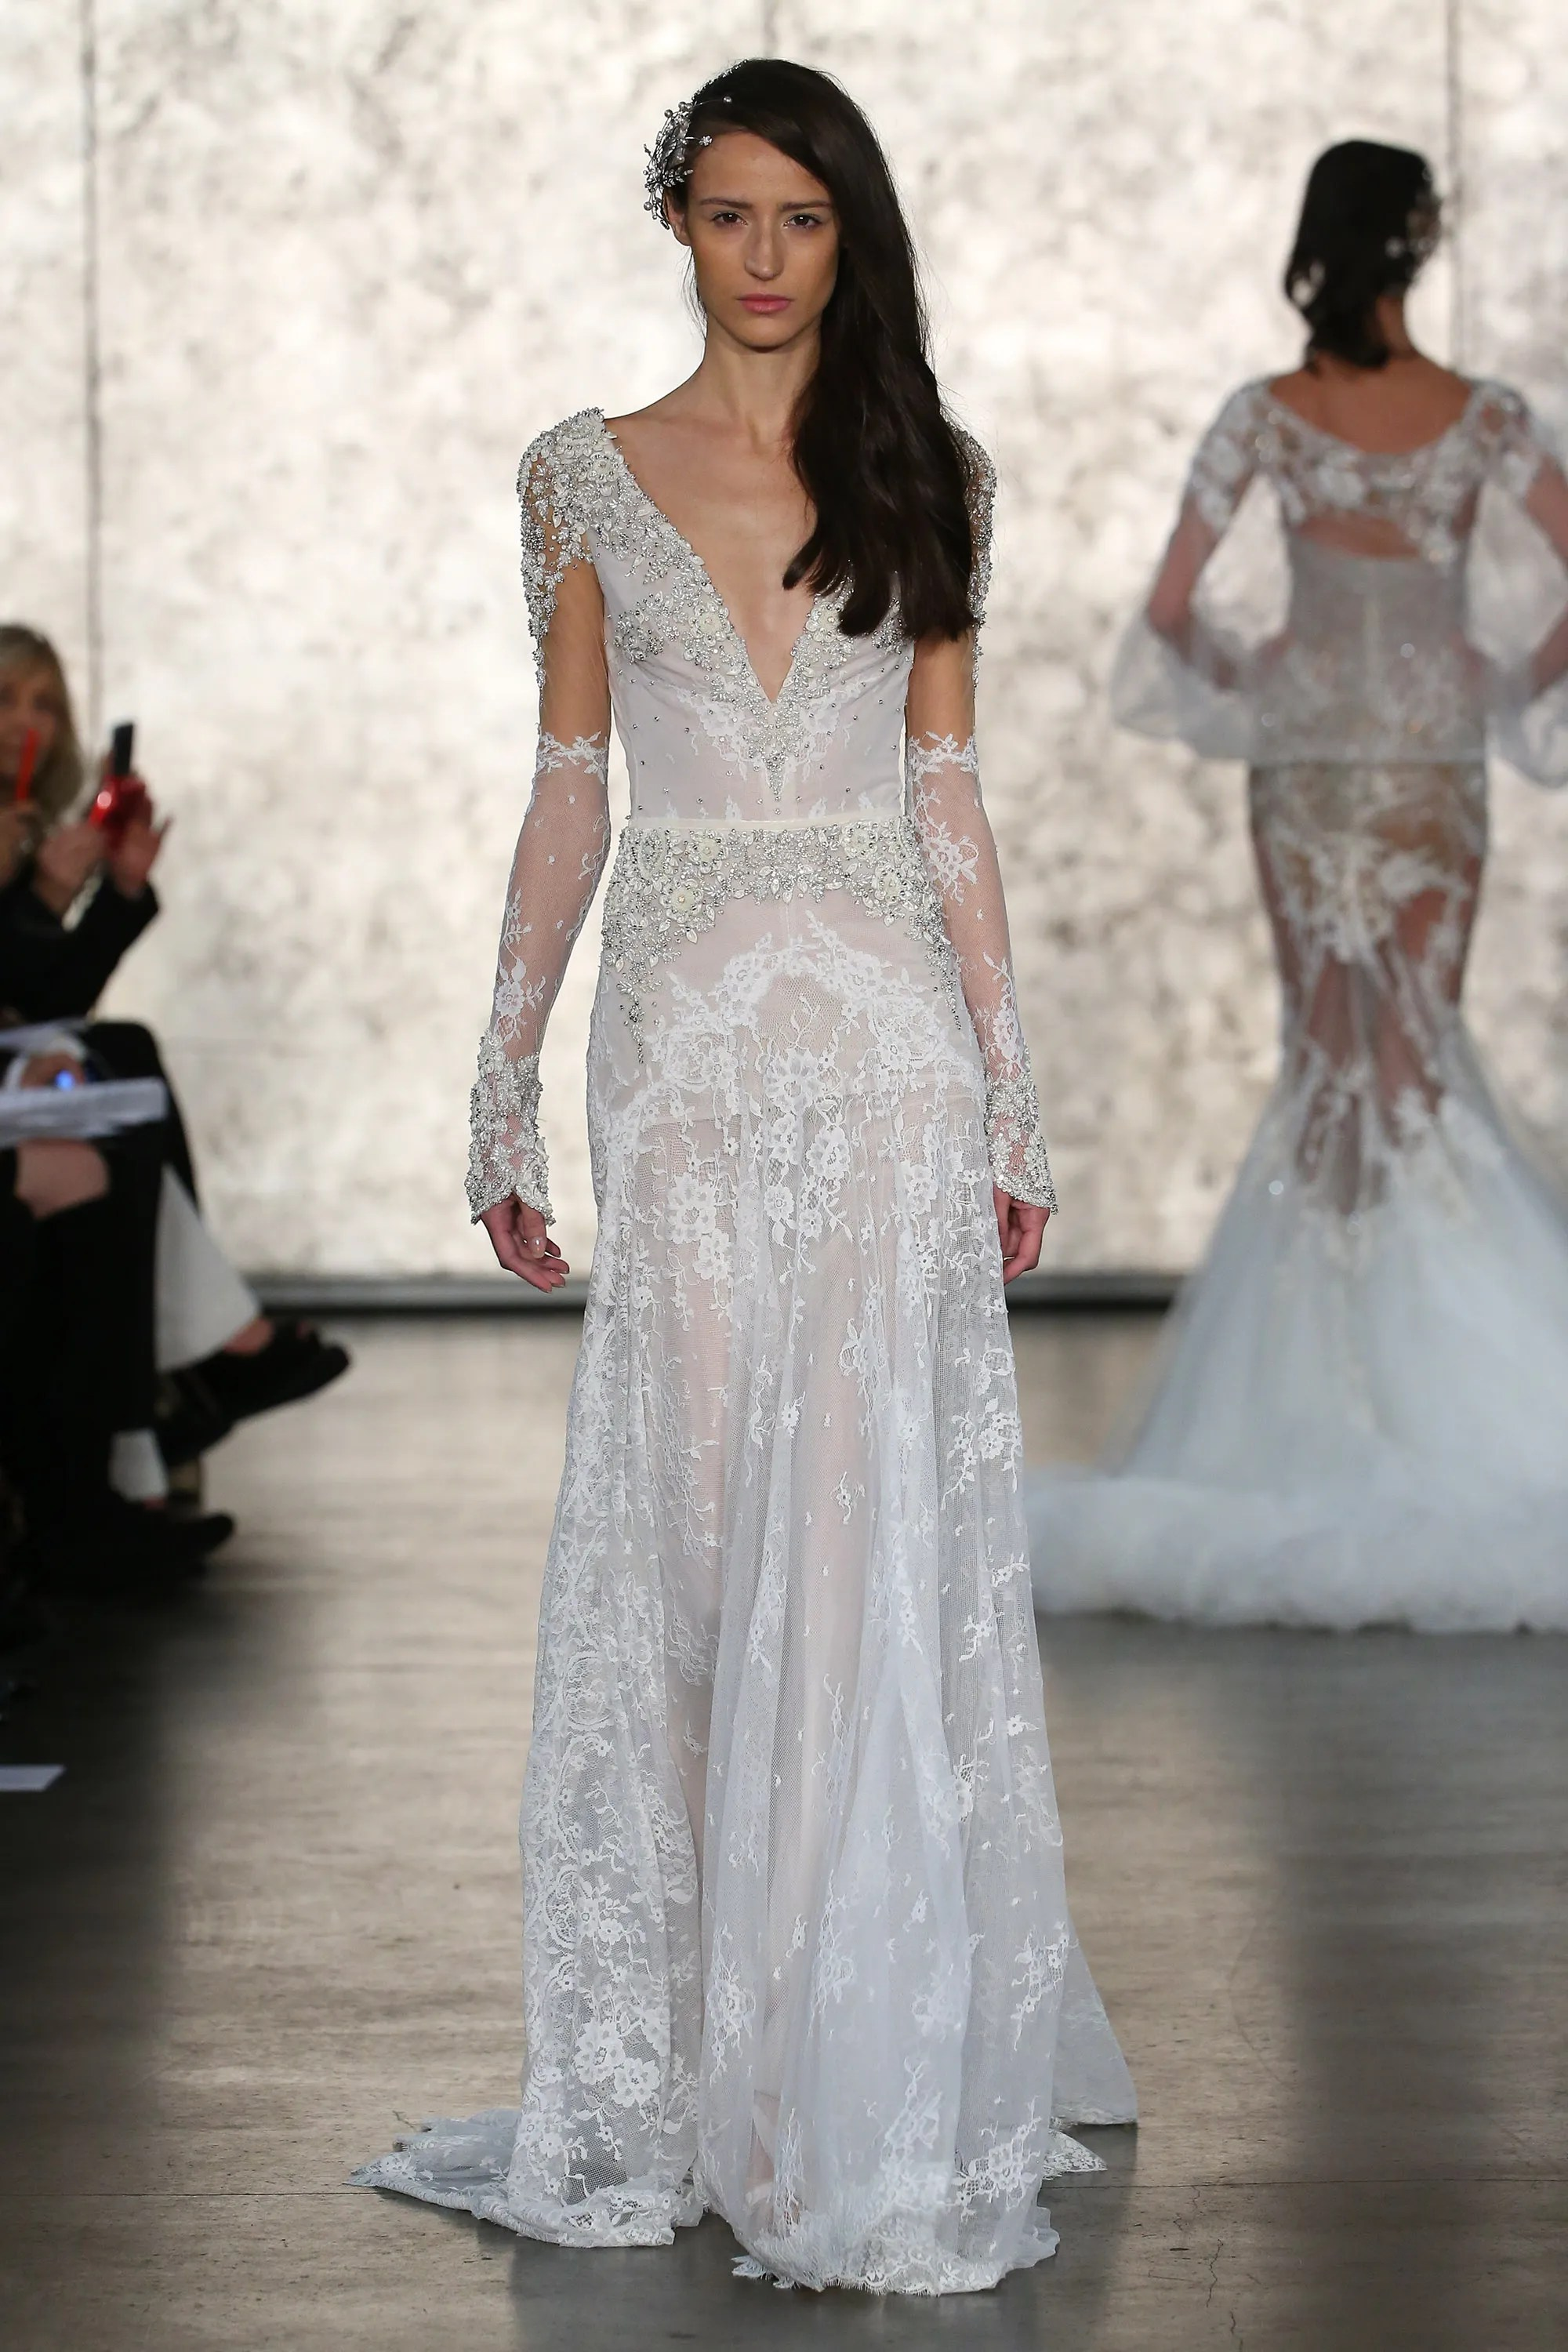 mermaid style wedding dresses with feathers wedding dress with feathers Inbal Dror Bridal Fall Collection Vogue